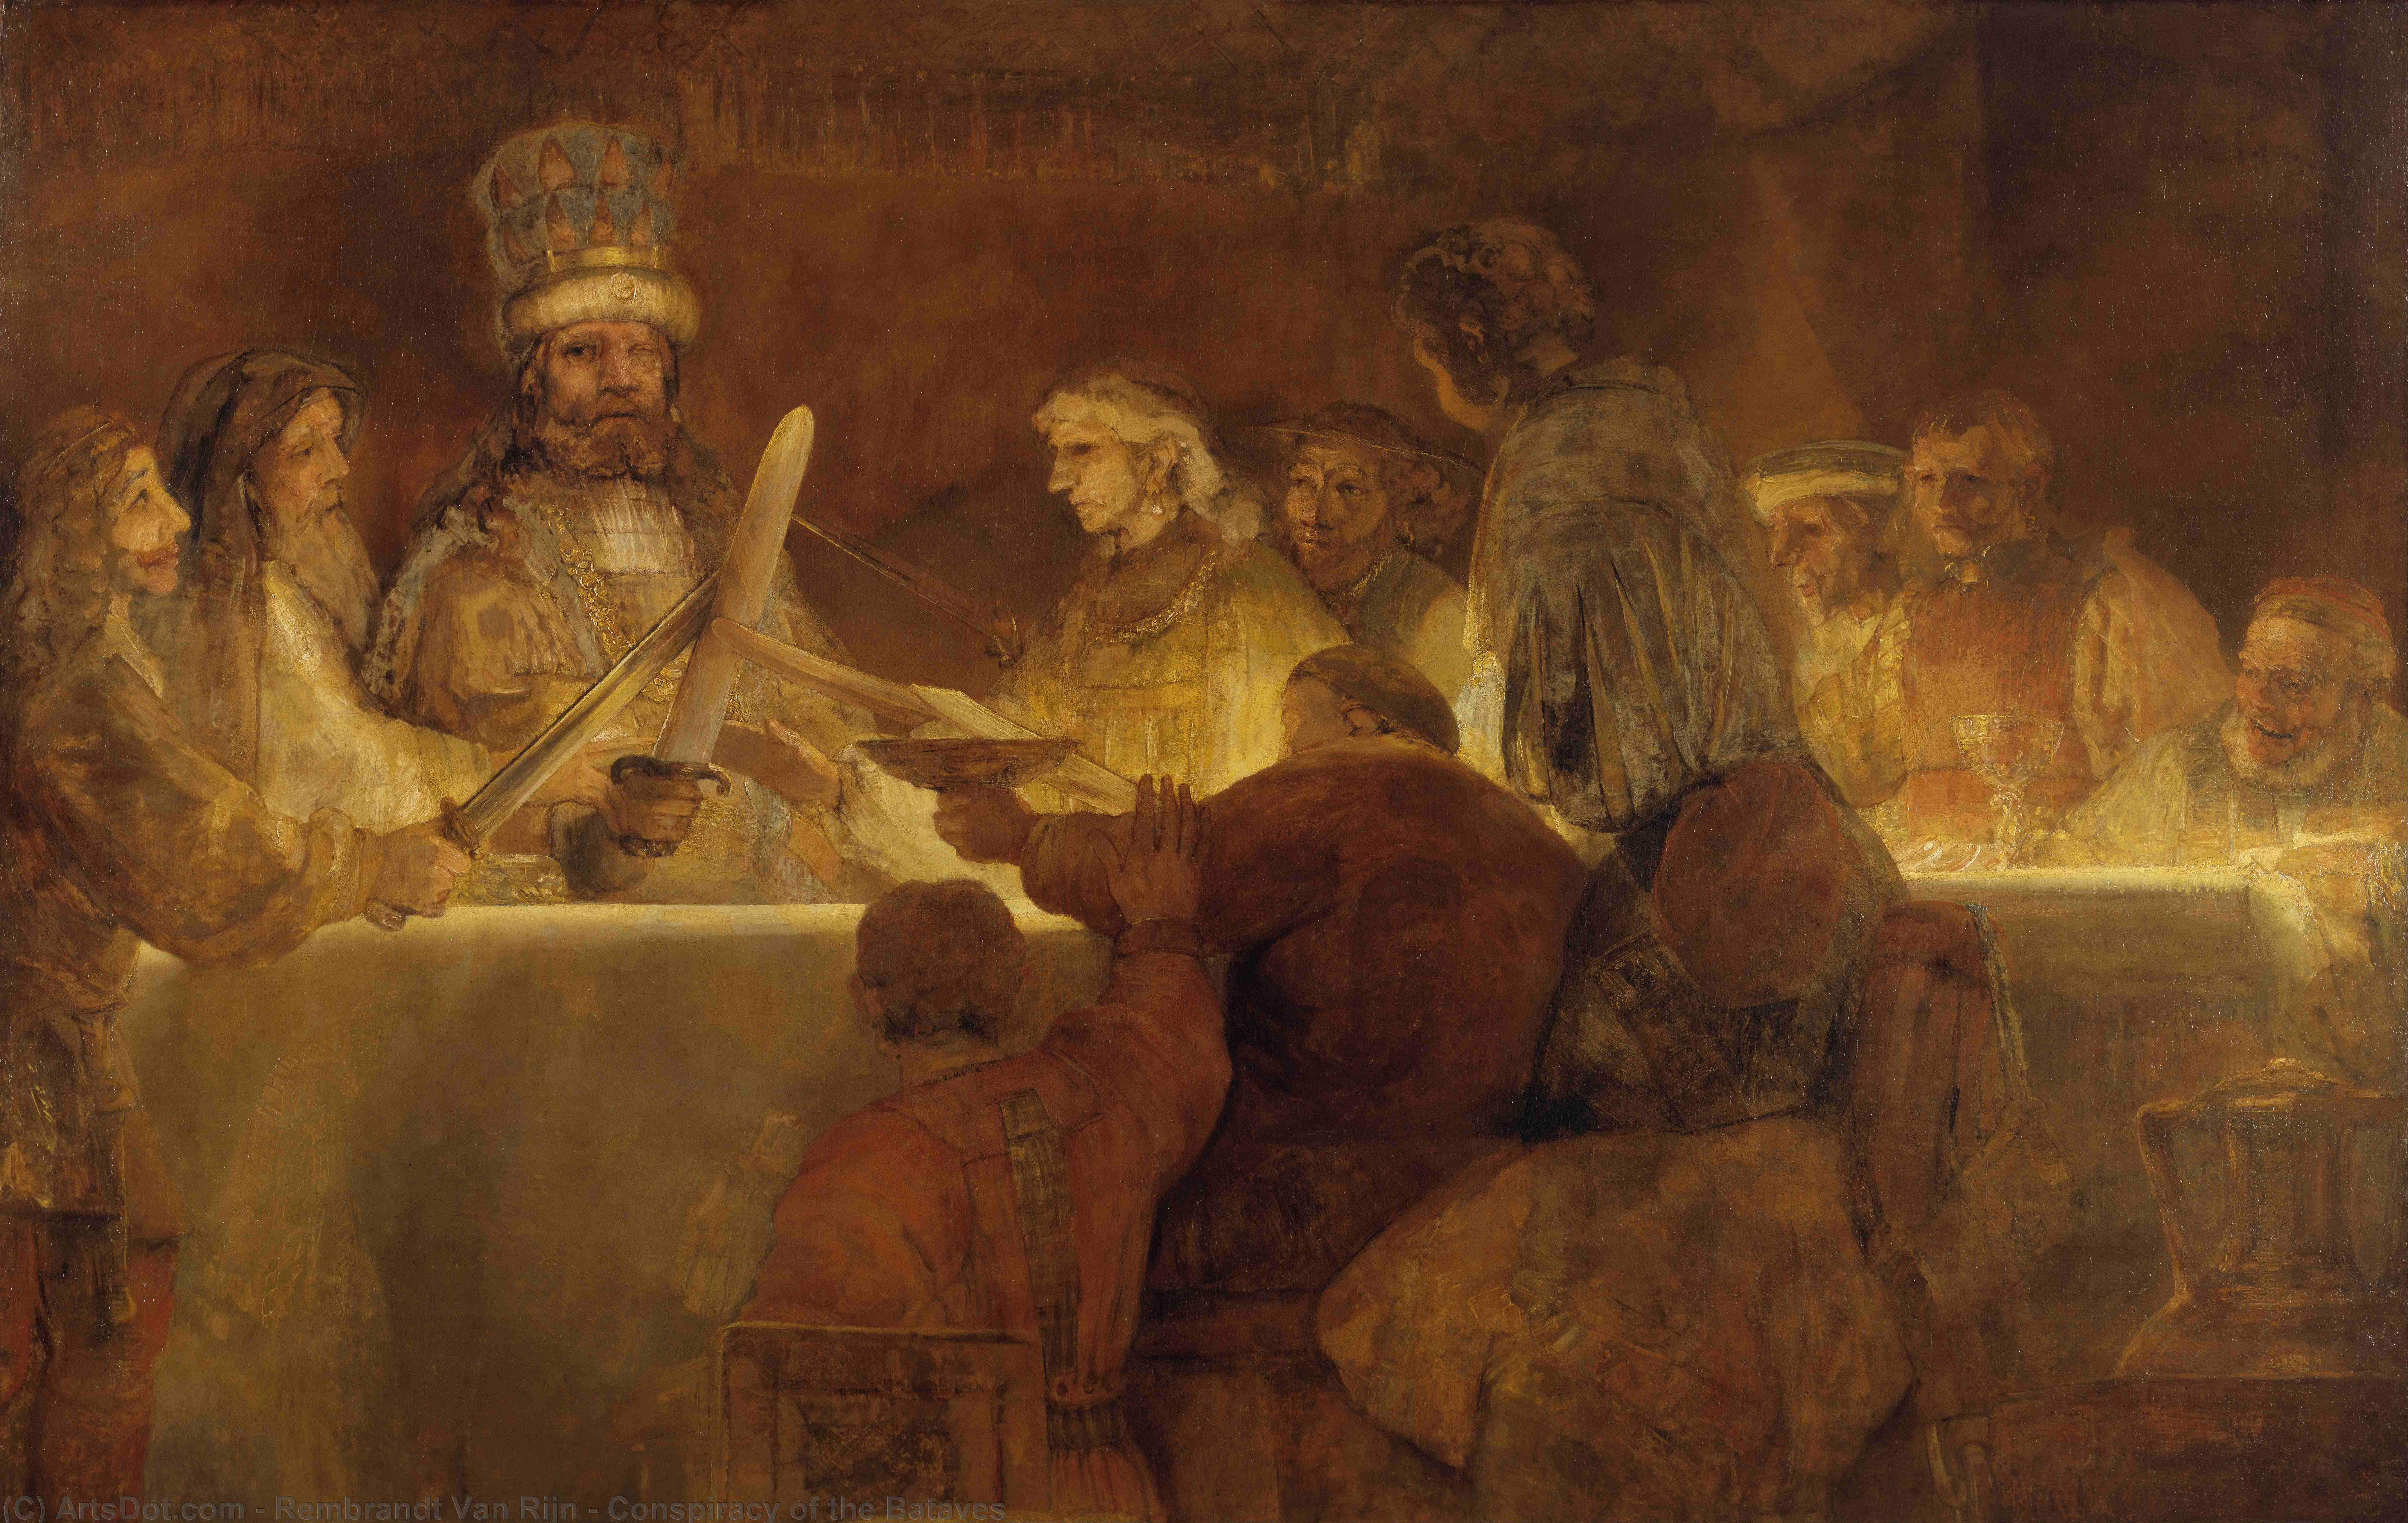 Wikioo.org - The Encyclopedia of Fine Arts - Painting, Artwork by Rembrandt Van Rijn - Conspiracy of the Bataves